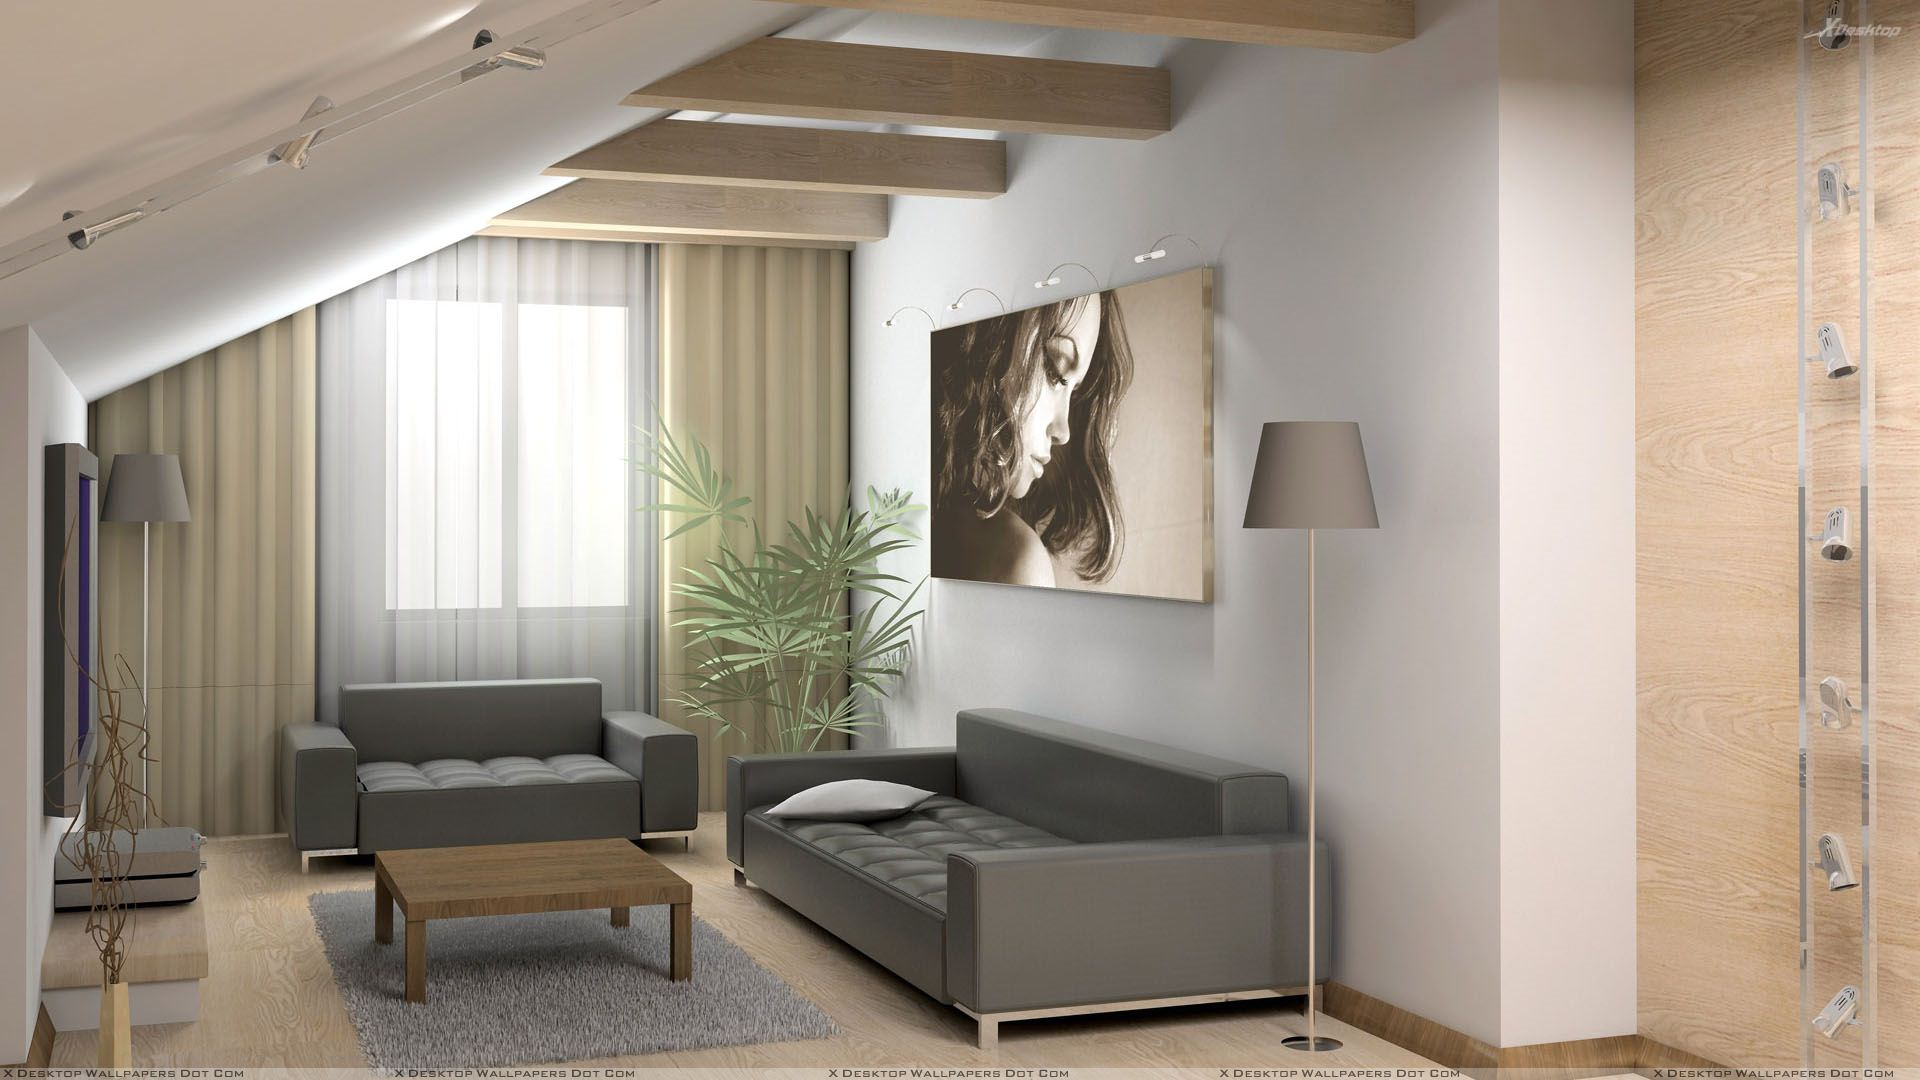 Grey Sofa And Picture On Wall Closeup Wallpaper